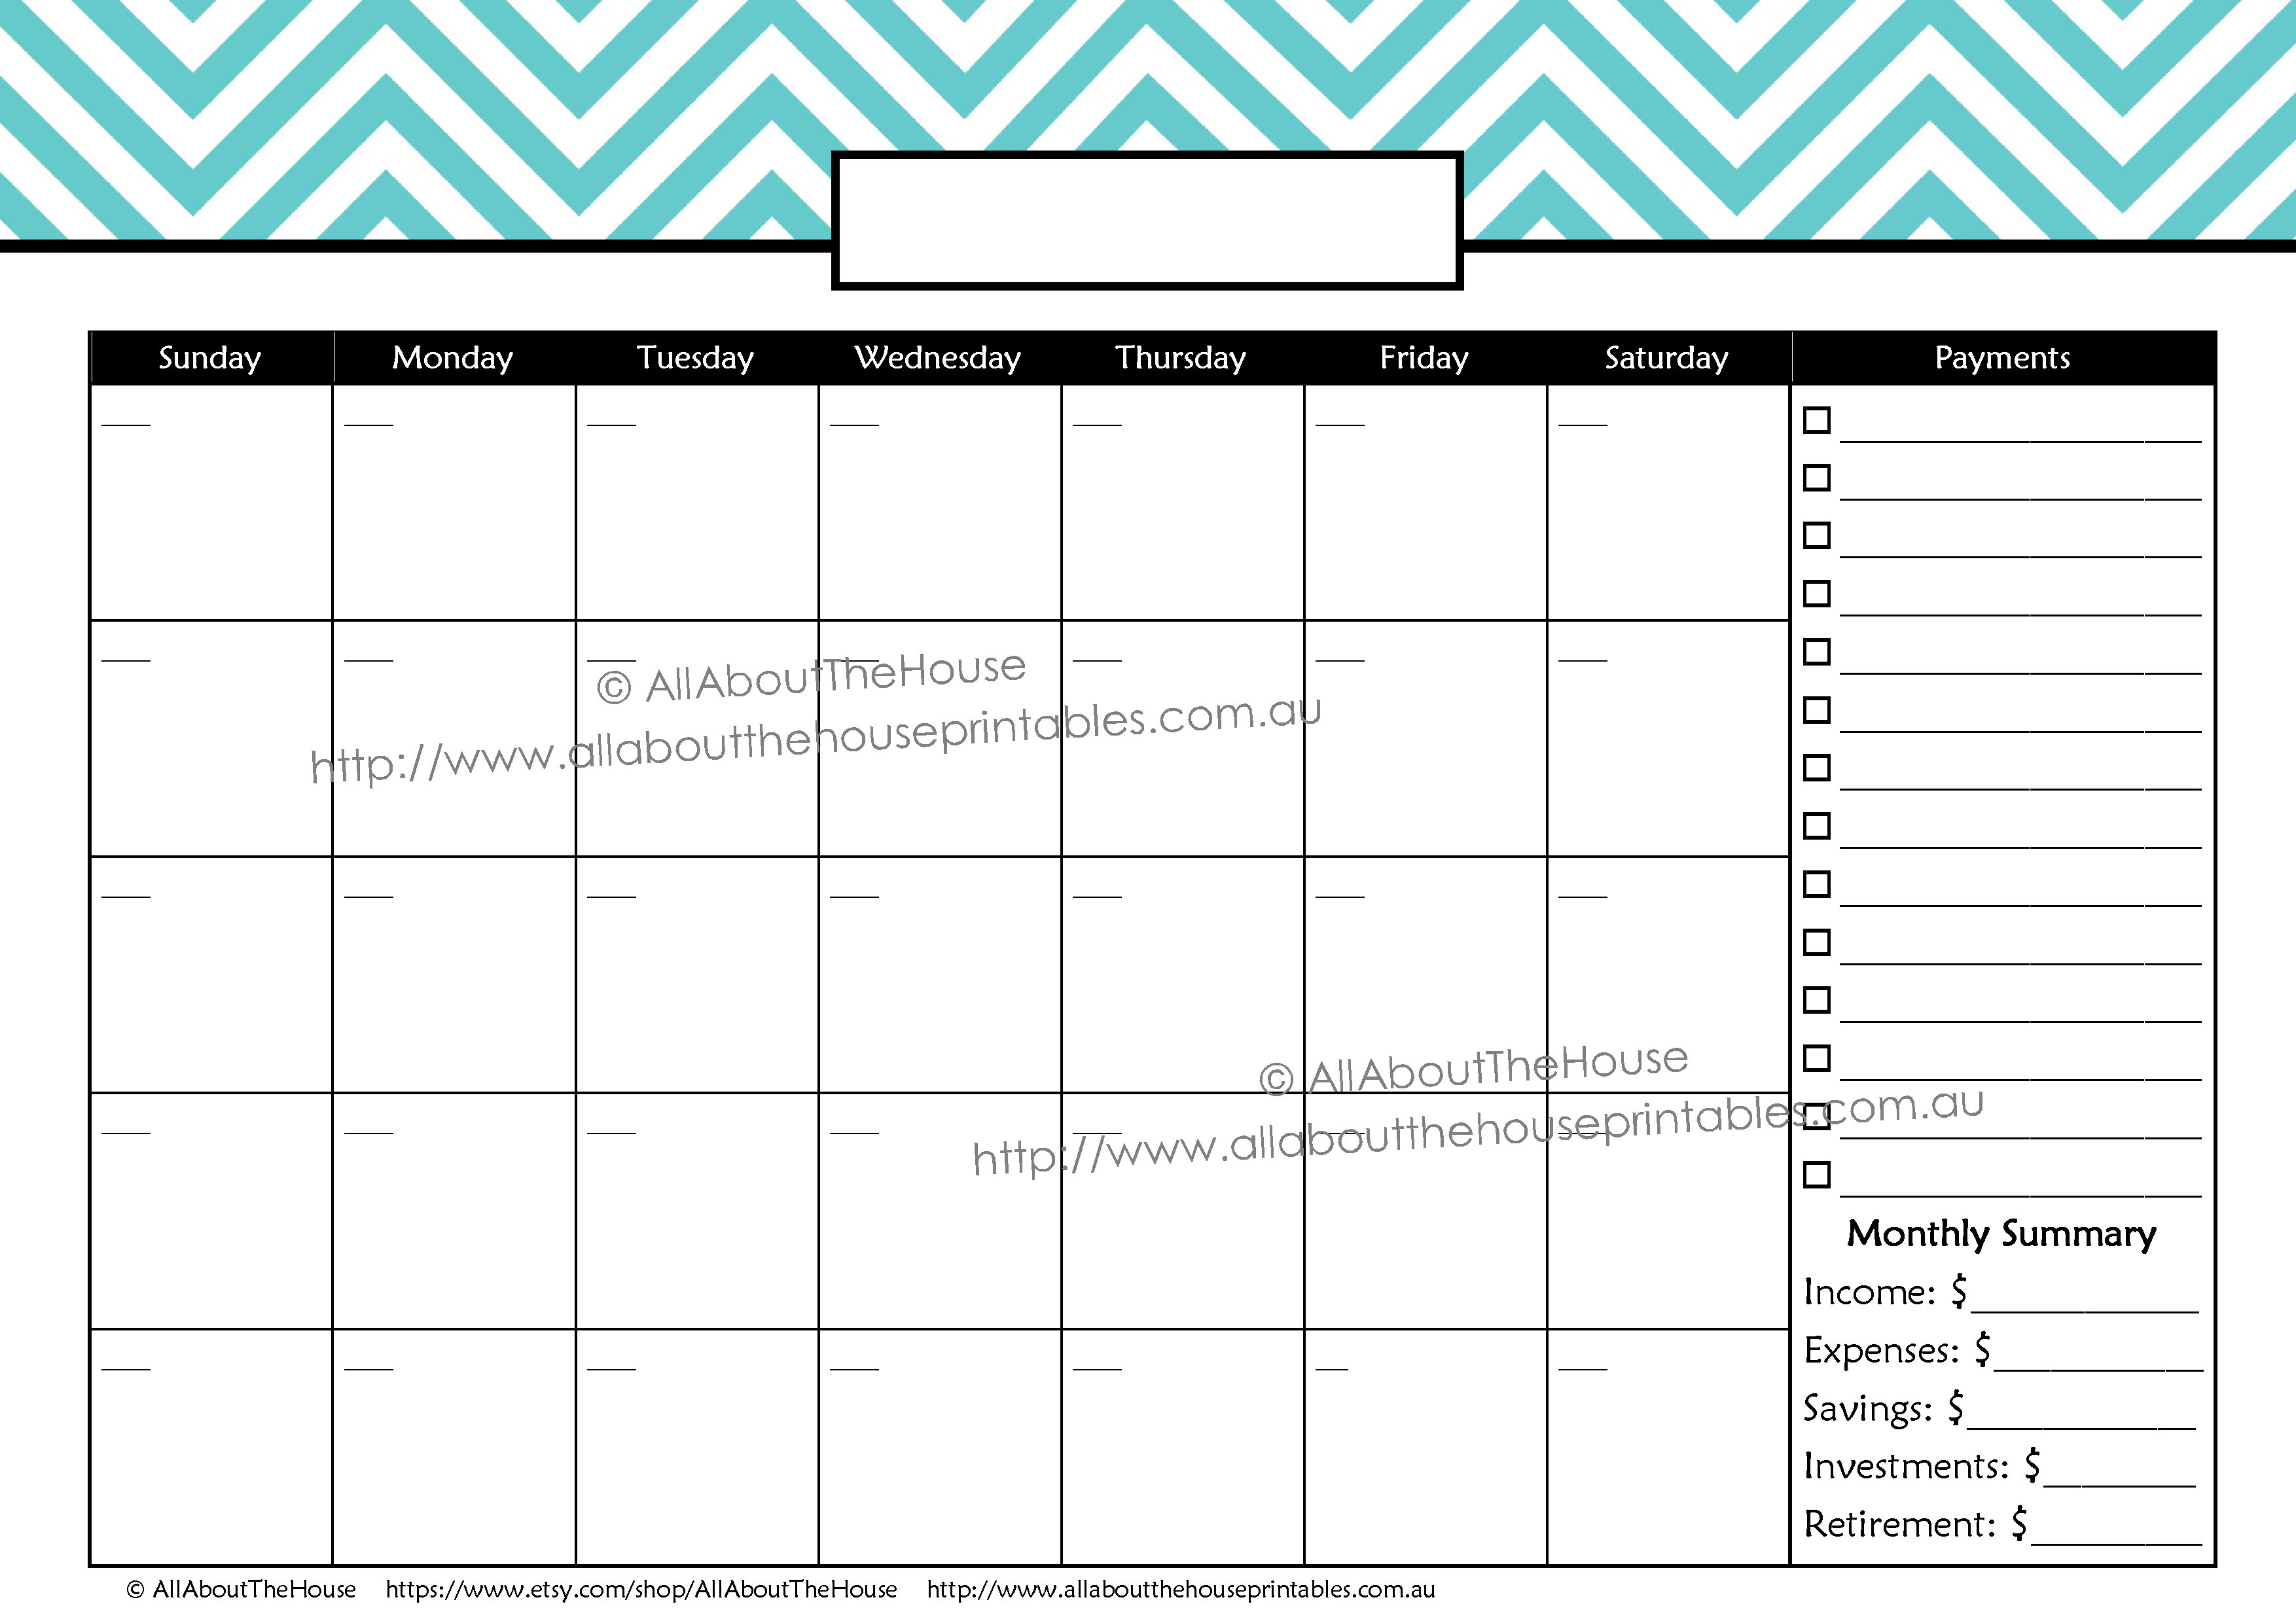 Bpay Planner | Allaboutthehouse Printables within Salary And Bill Payment Schedule Template Printable